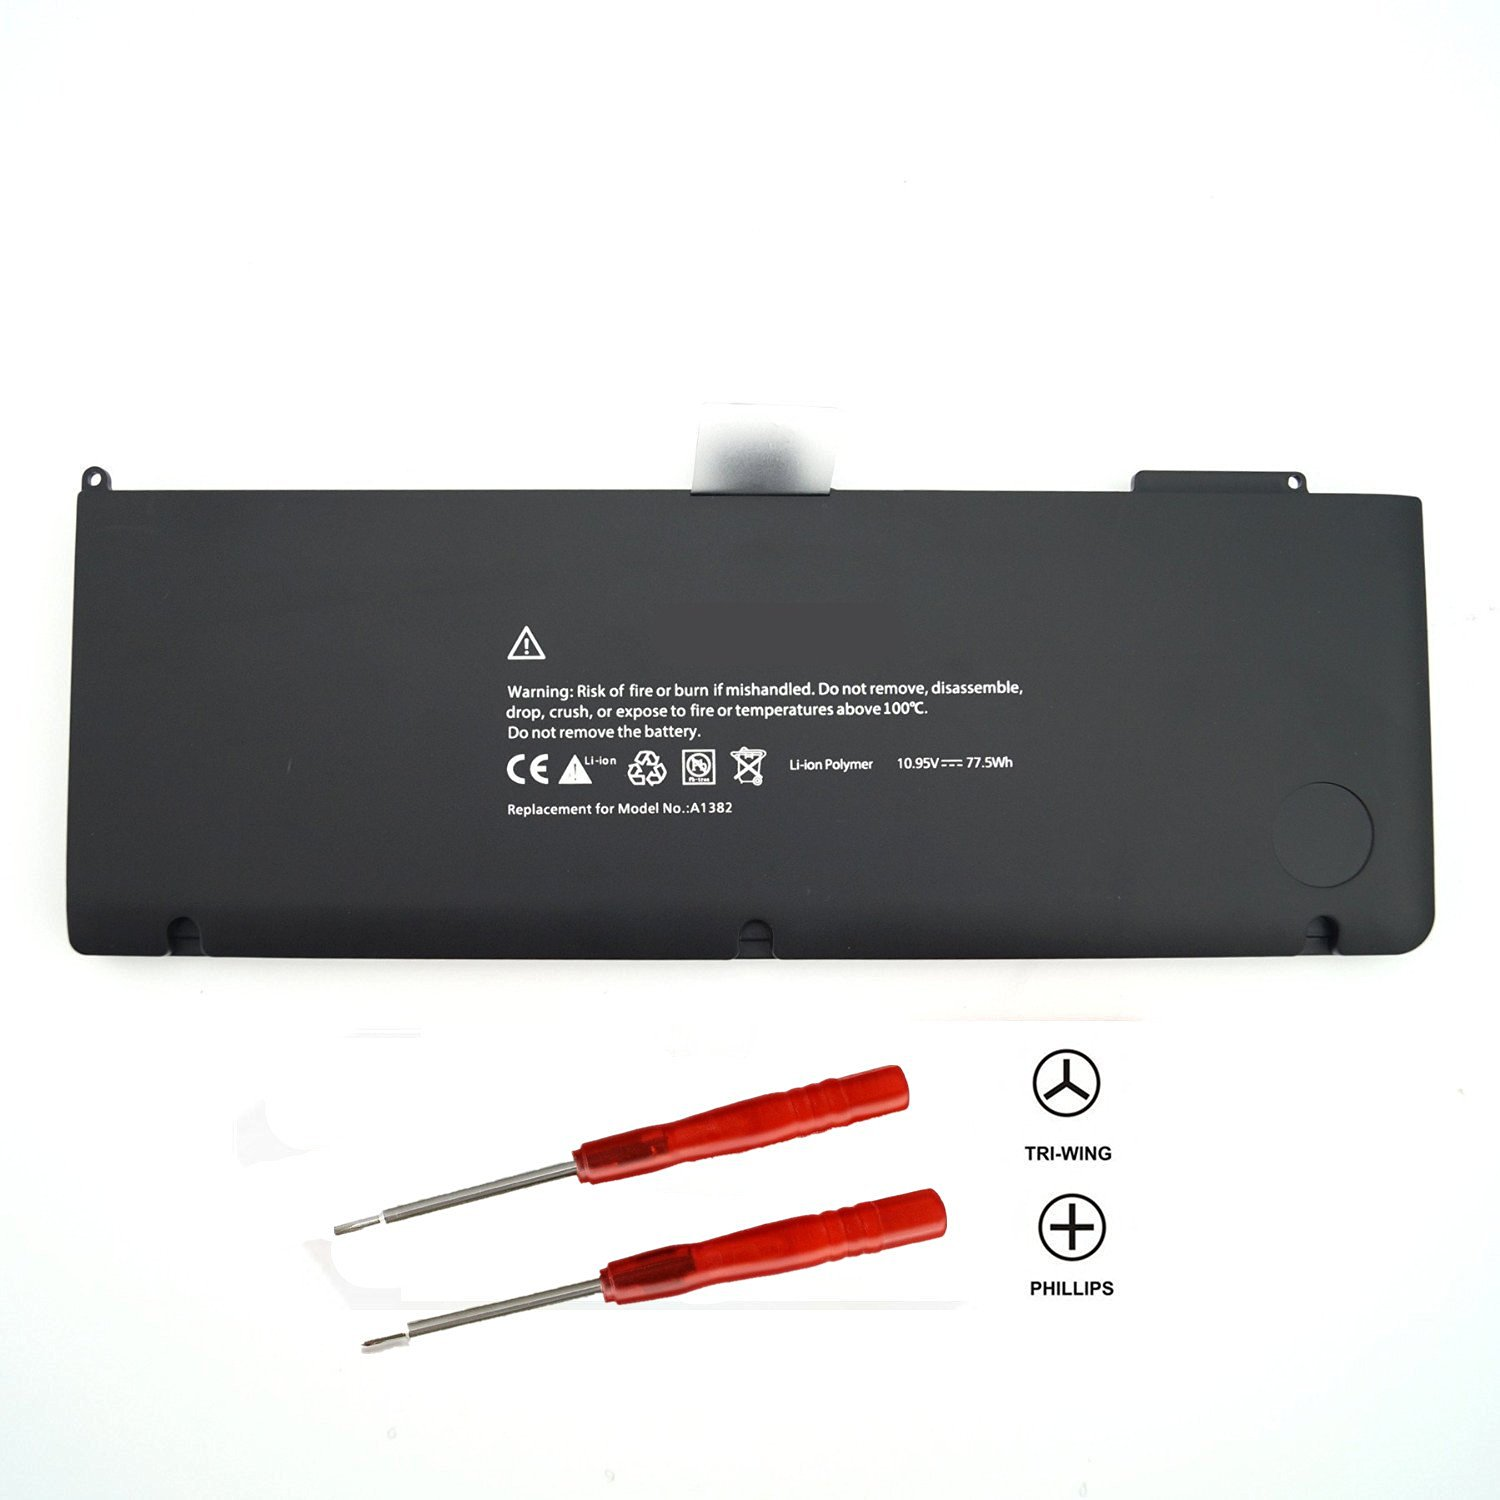 T-Quick® 10.95V 77.5Wh A1382 Battery For Apple A1382 A1286 (only for Core i7 Early 2011 Late 2011 Mid 2012) MacBook Pro 15 Inch Core i7,Replace:MC721LL/A, MC723LL/A, MD318LL/A, MD322LL/A, MD103LL/A, MD104LL/A, 020-7134-A, 661-5844, 661-52119(With 3 Free Screwdrivers)